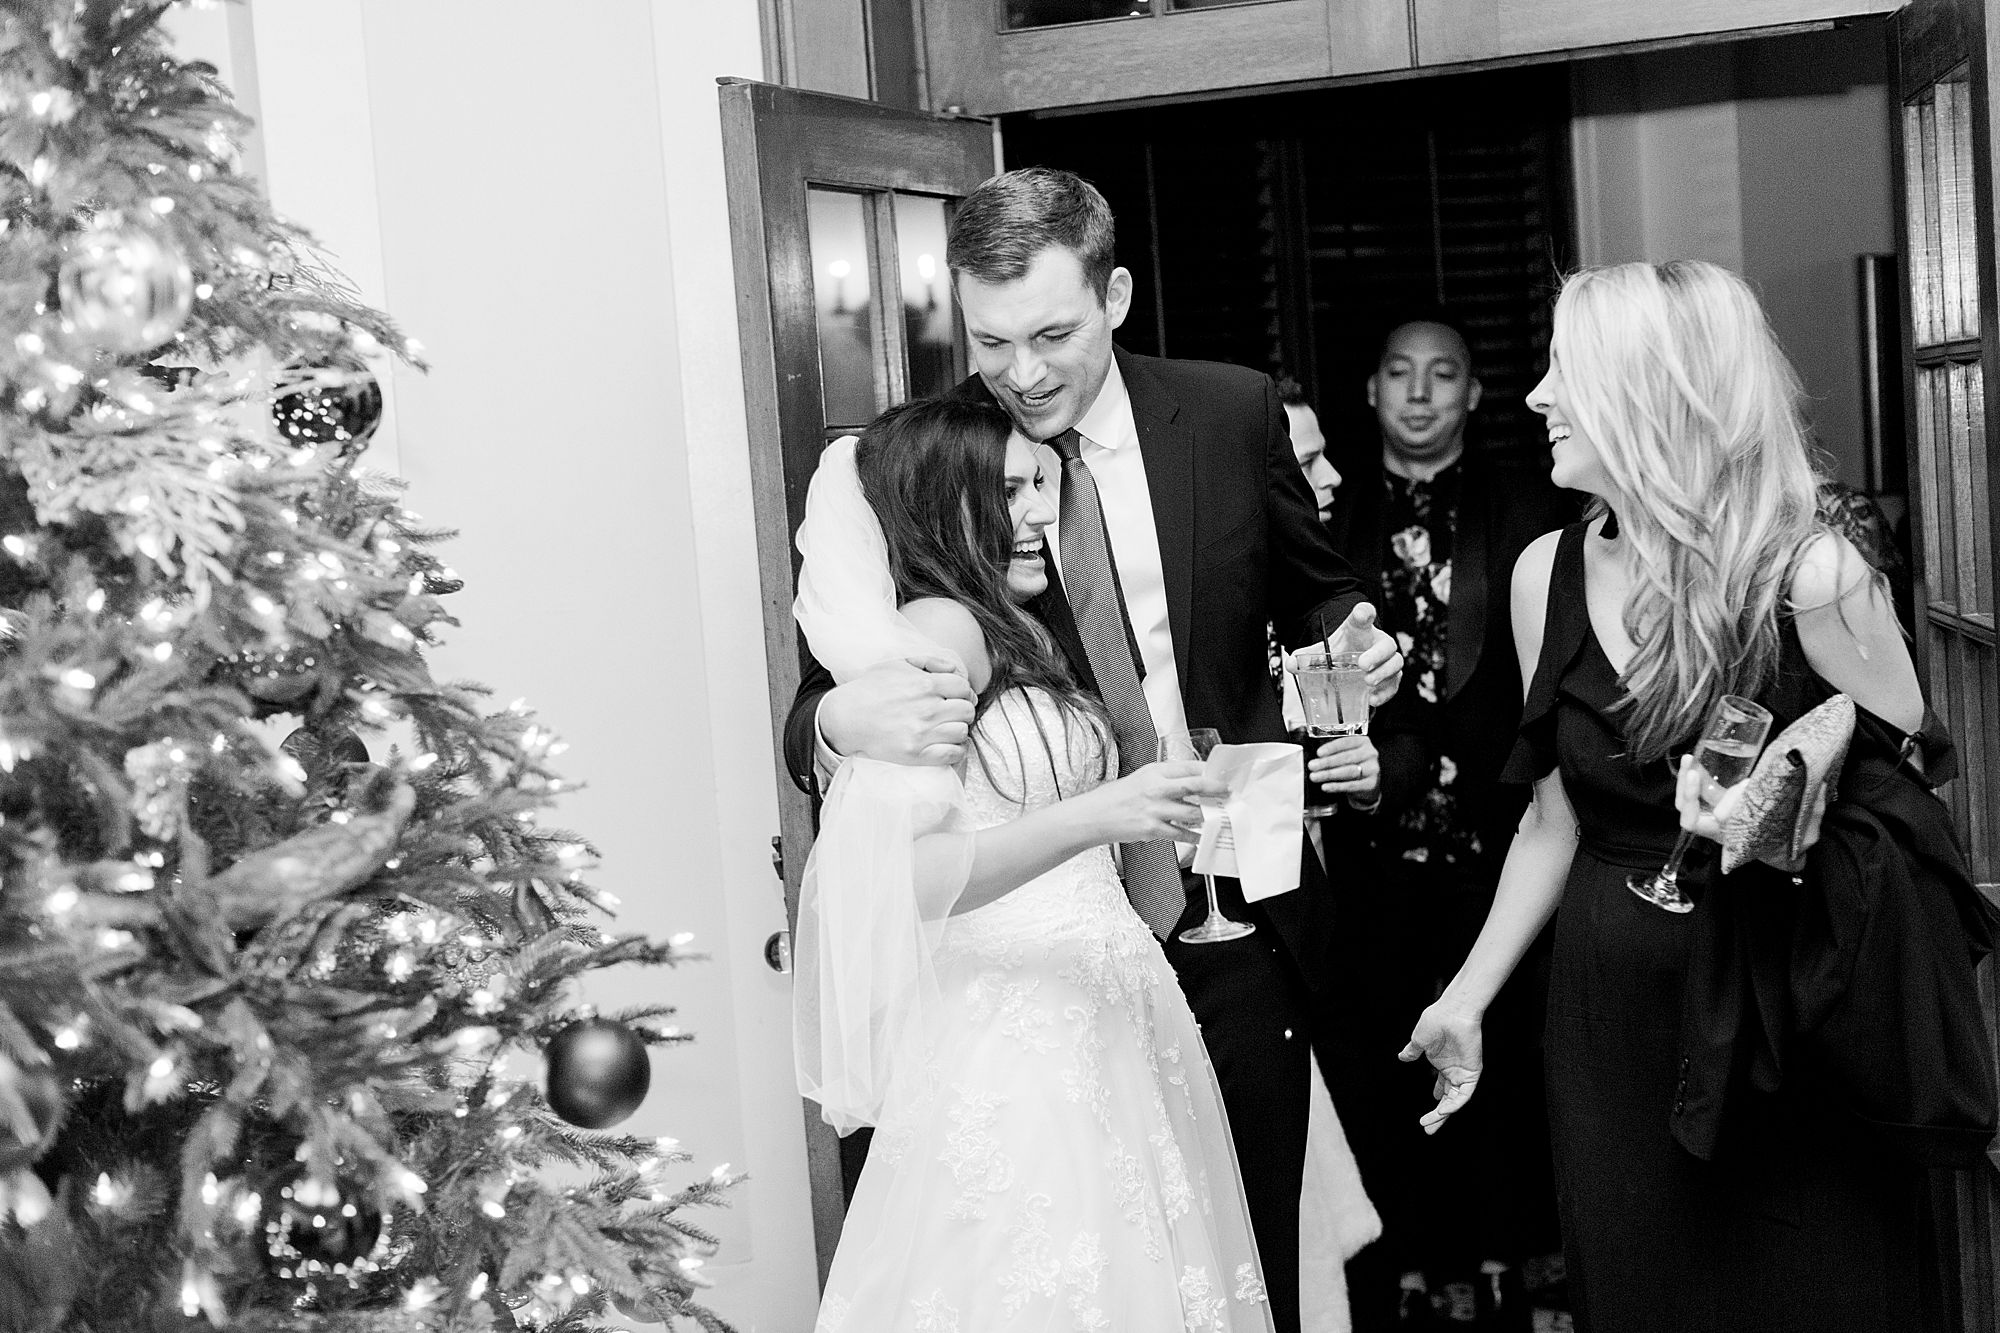 University Club Wedding in San Francisco - Cortney and Jon - San Francisco Wedding - Ashley Baumgartner - SF Wedding Photographer_0105.jpg